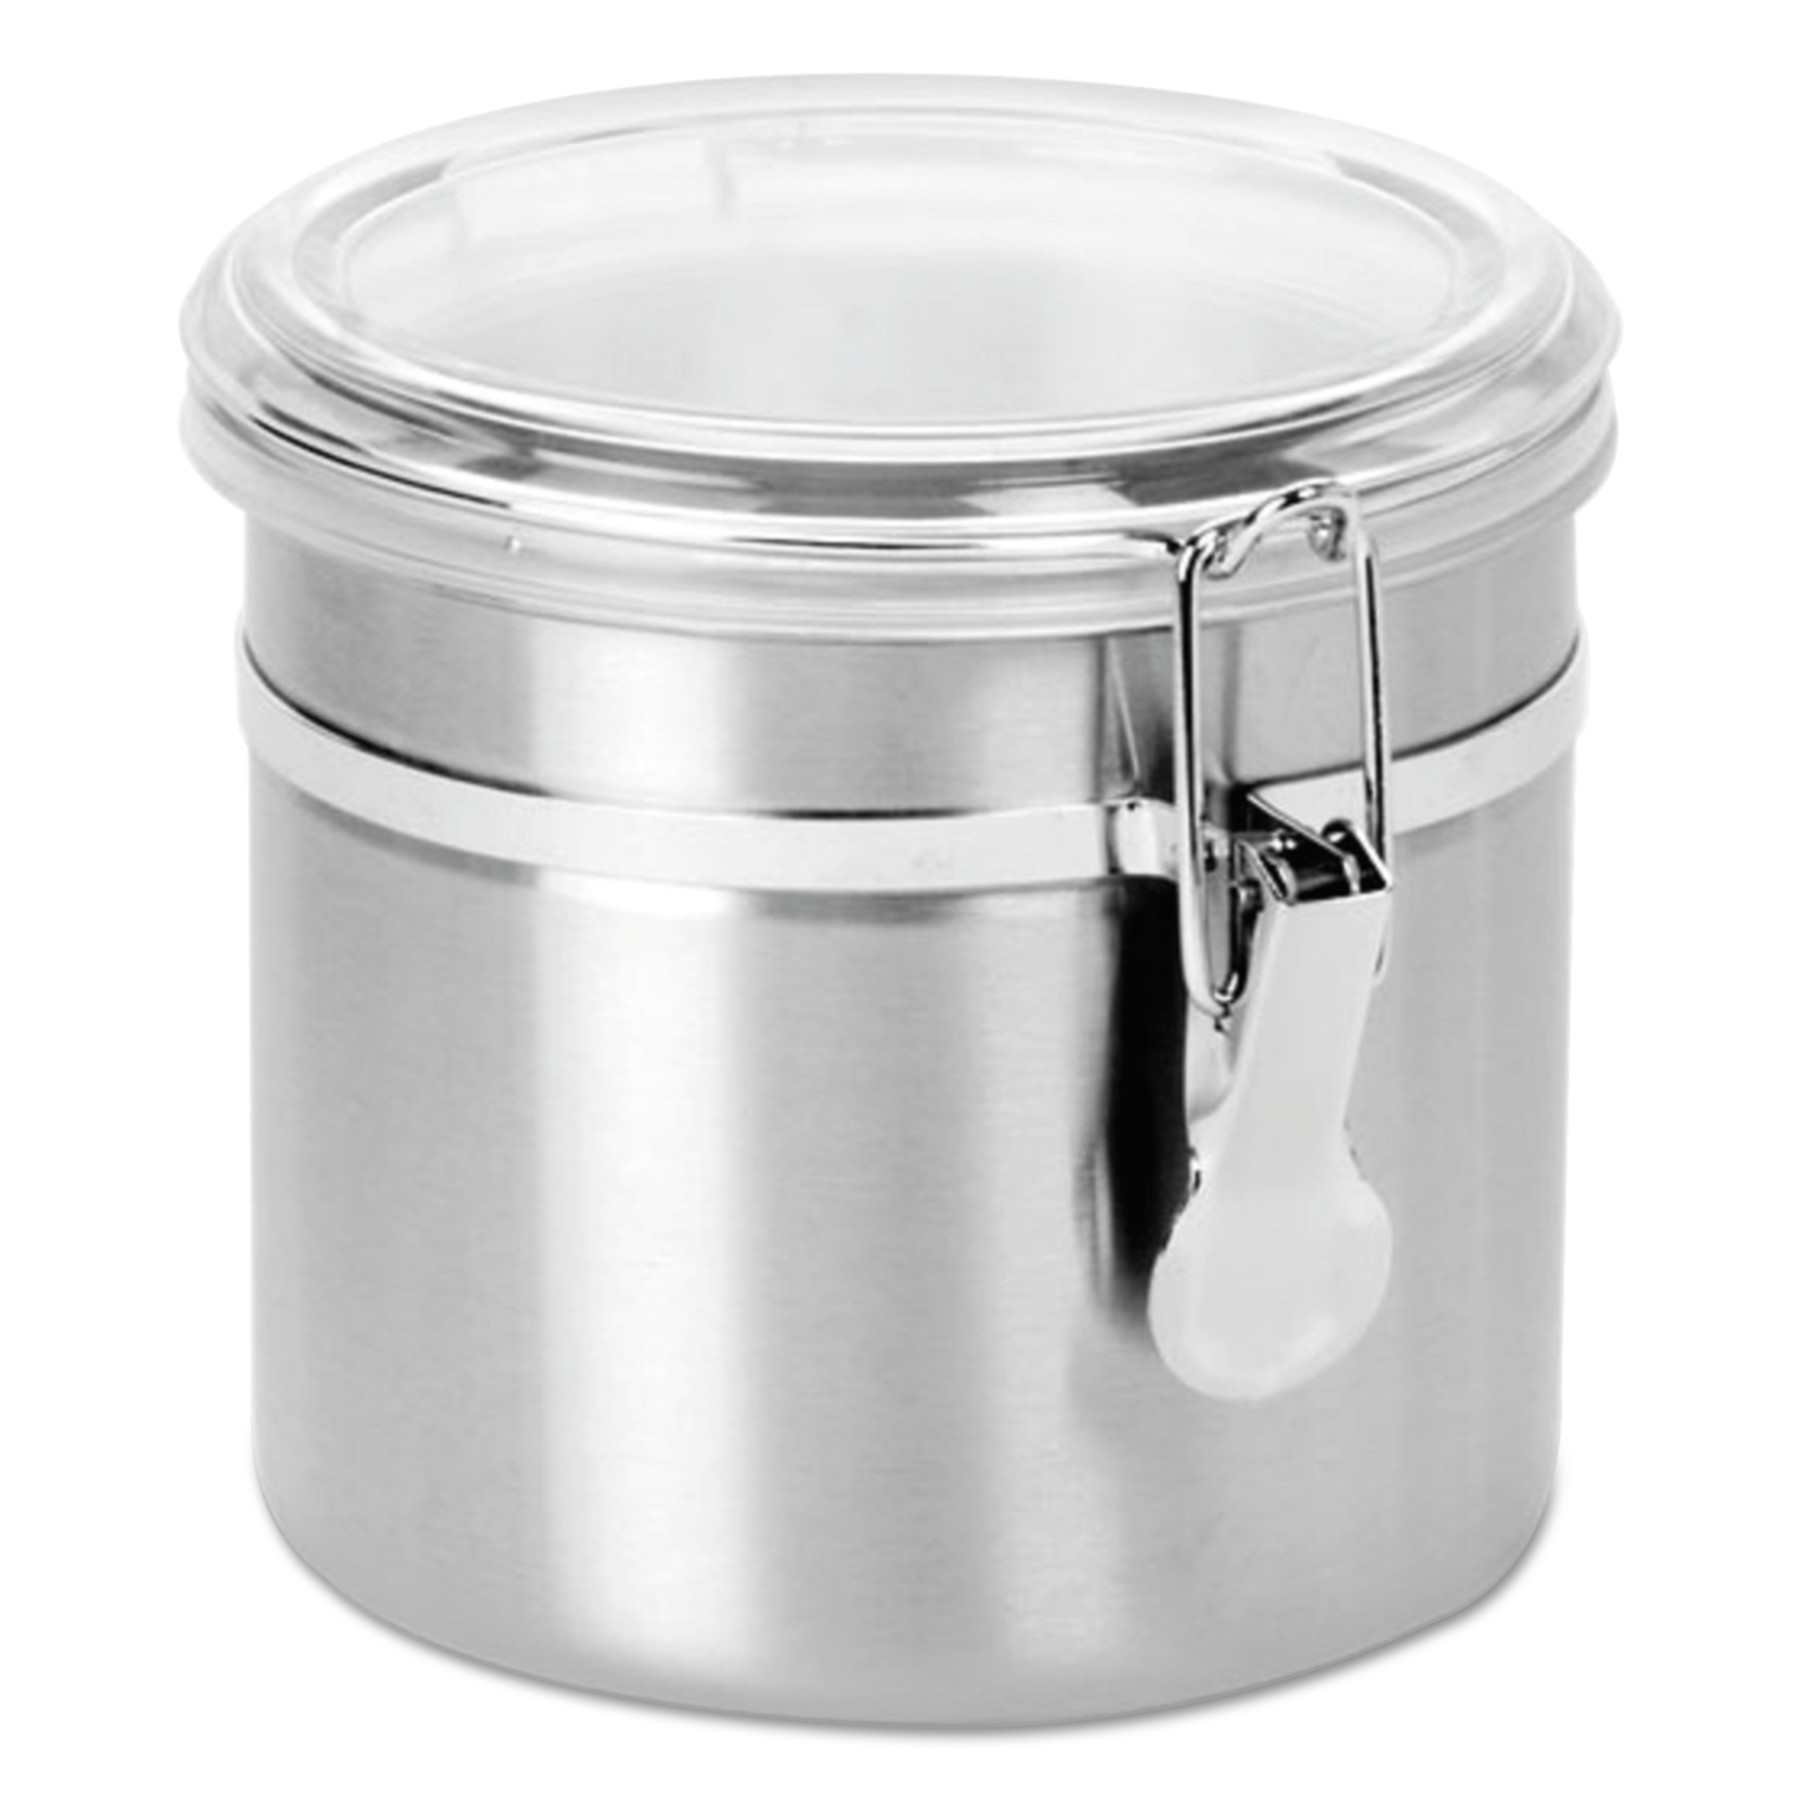 Office Settings Stainless Steel Canisters, 38 oz